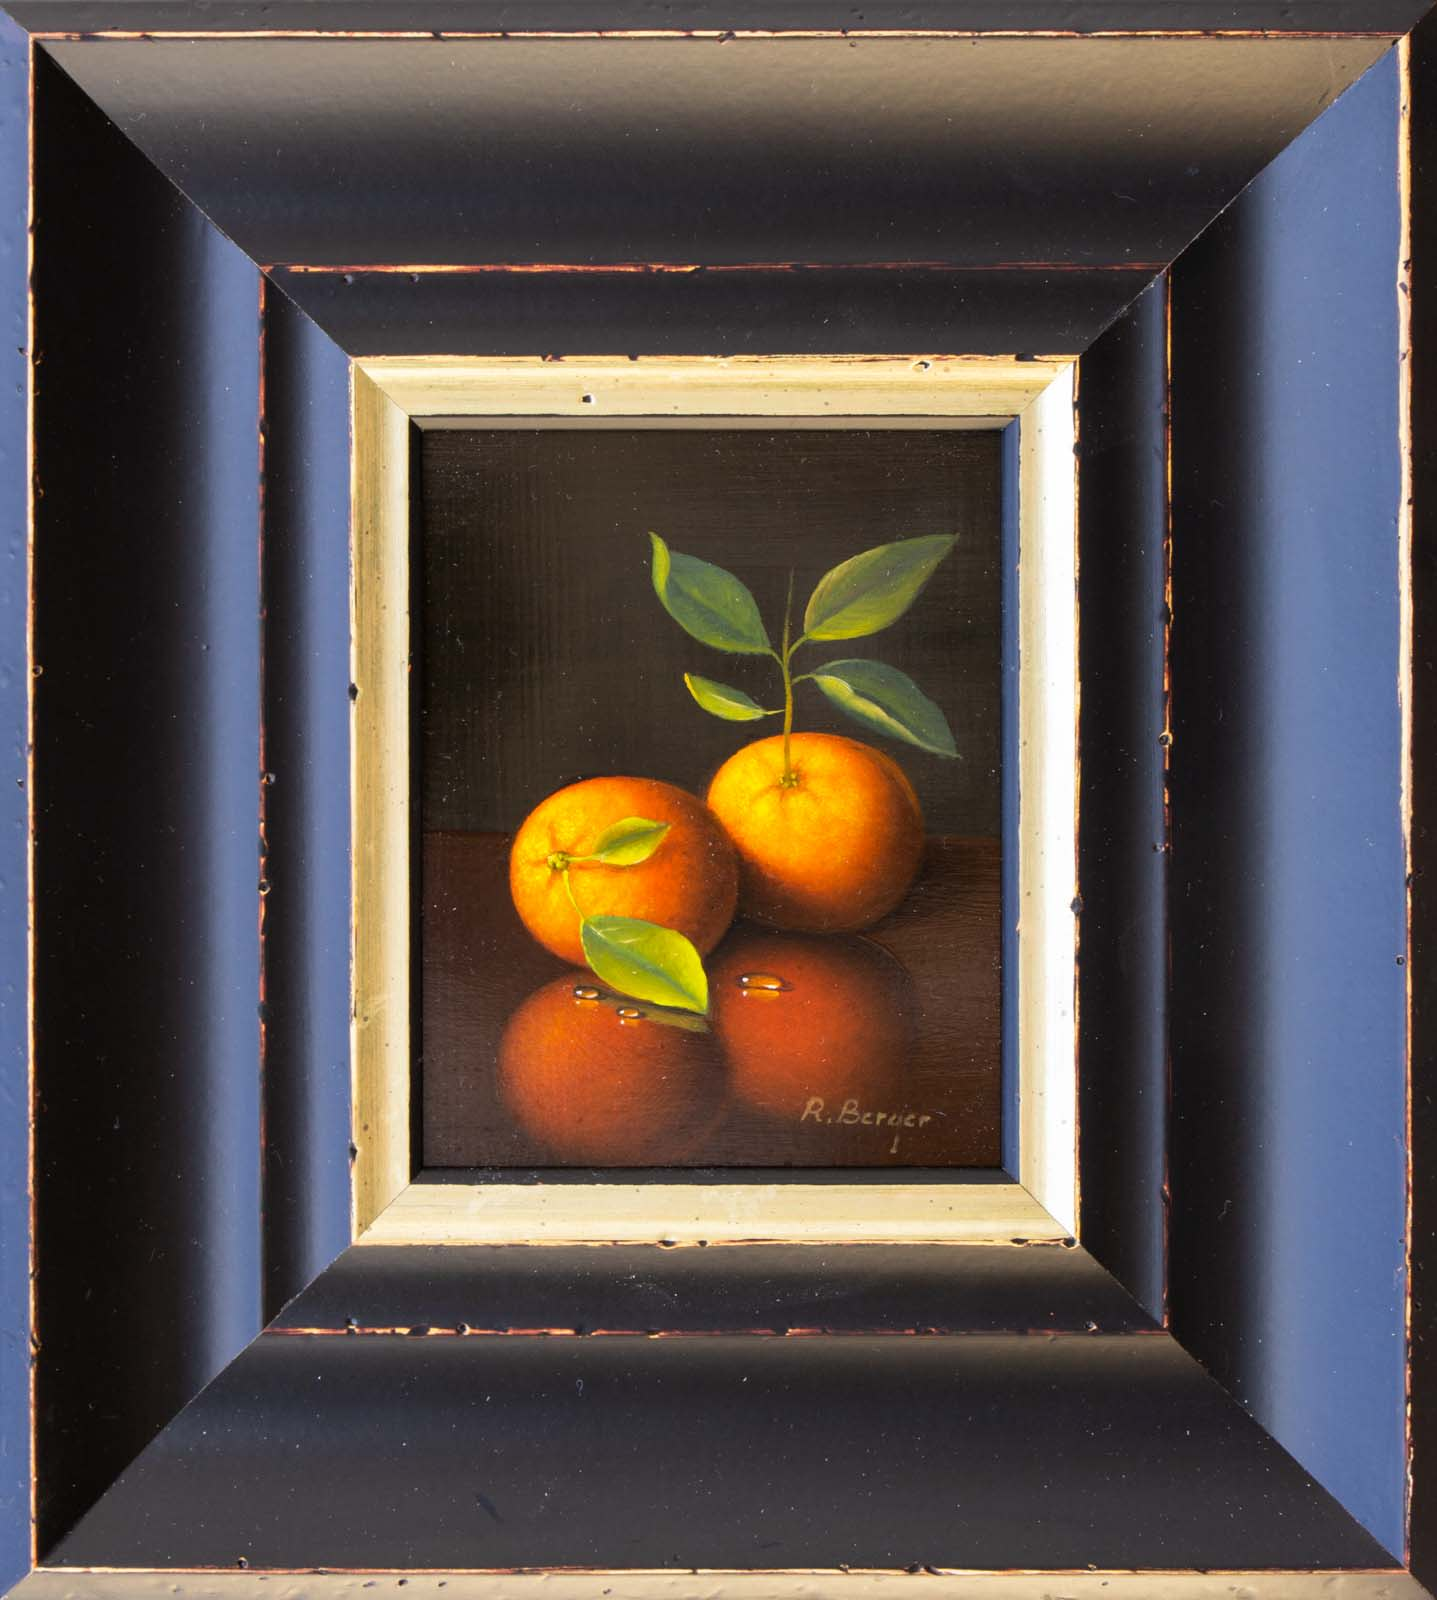 Two Oranges, Ronald Berger